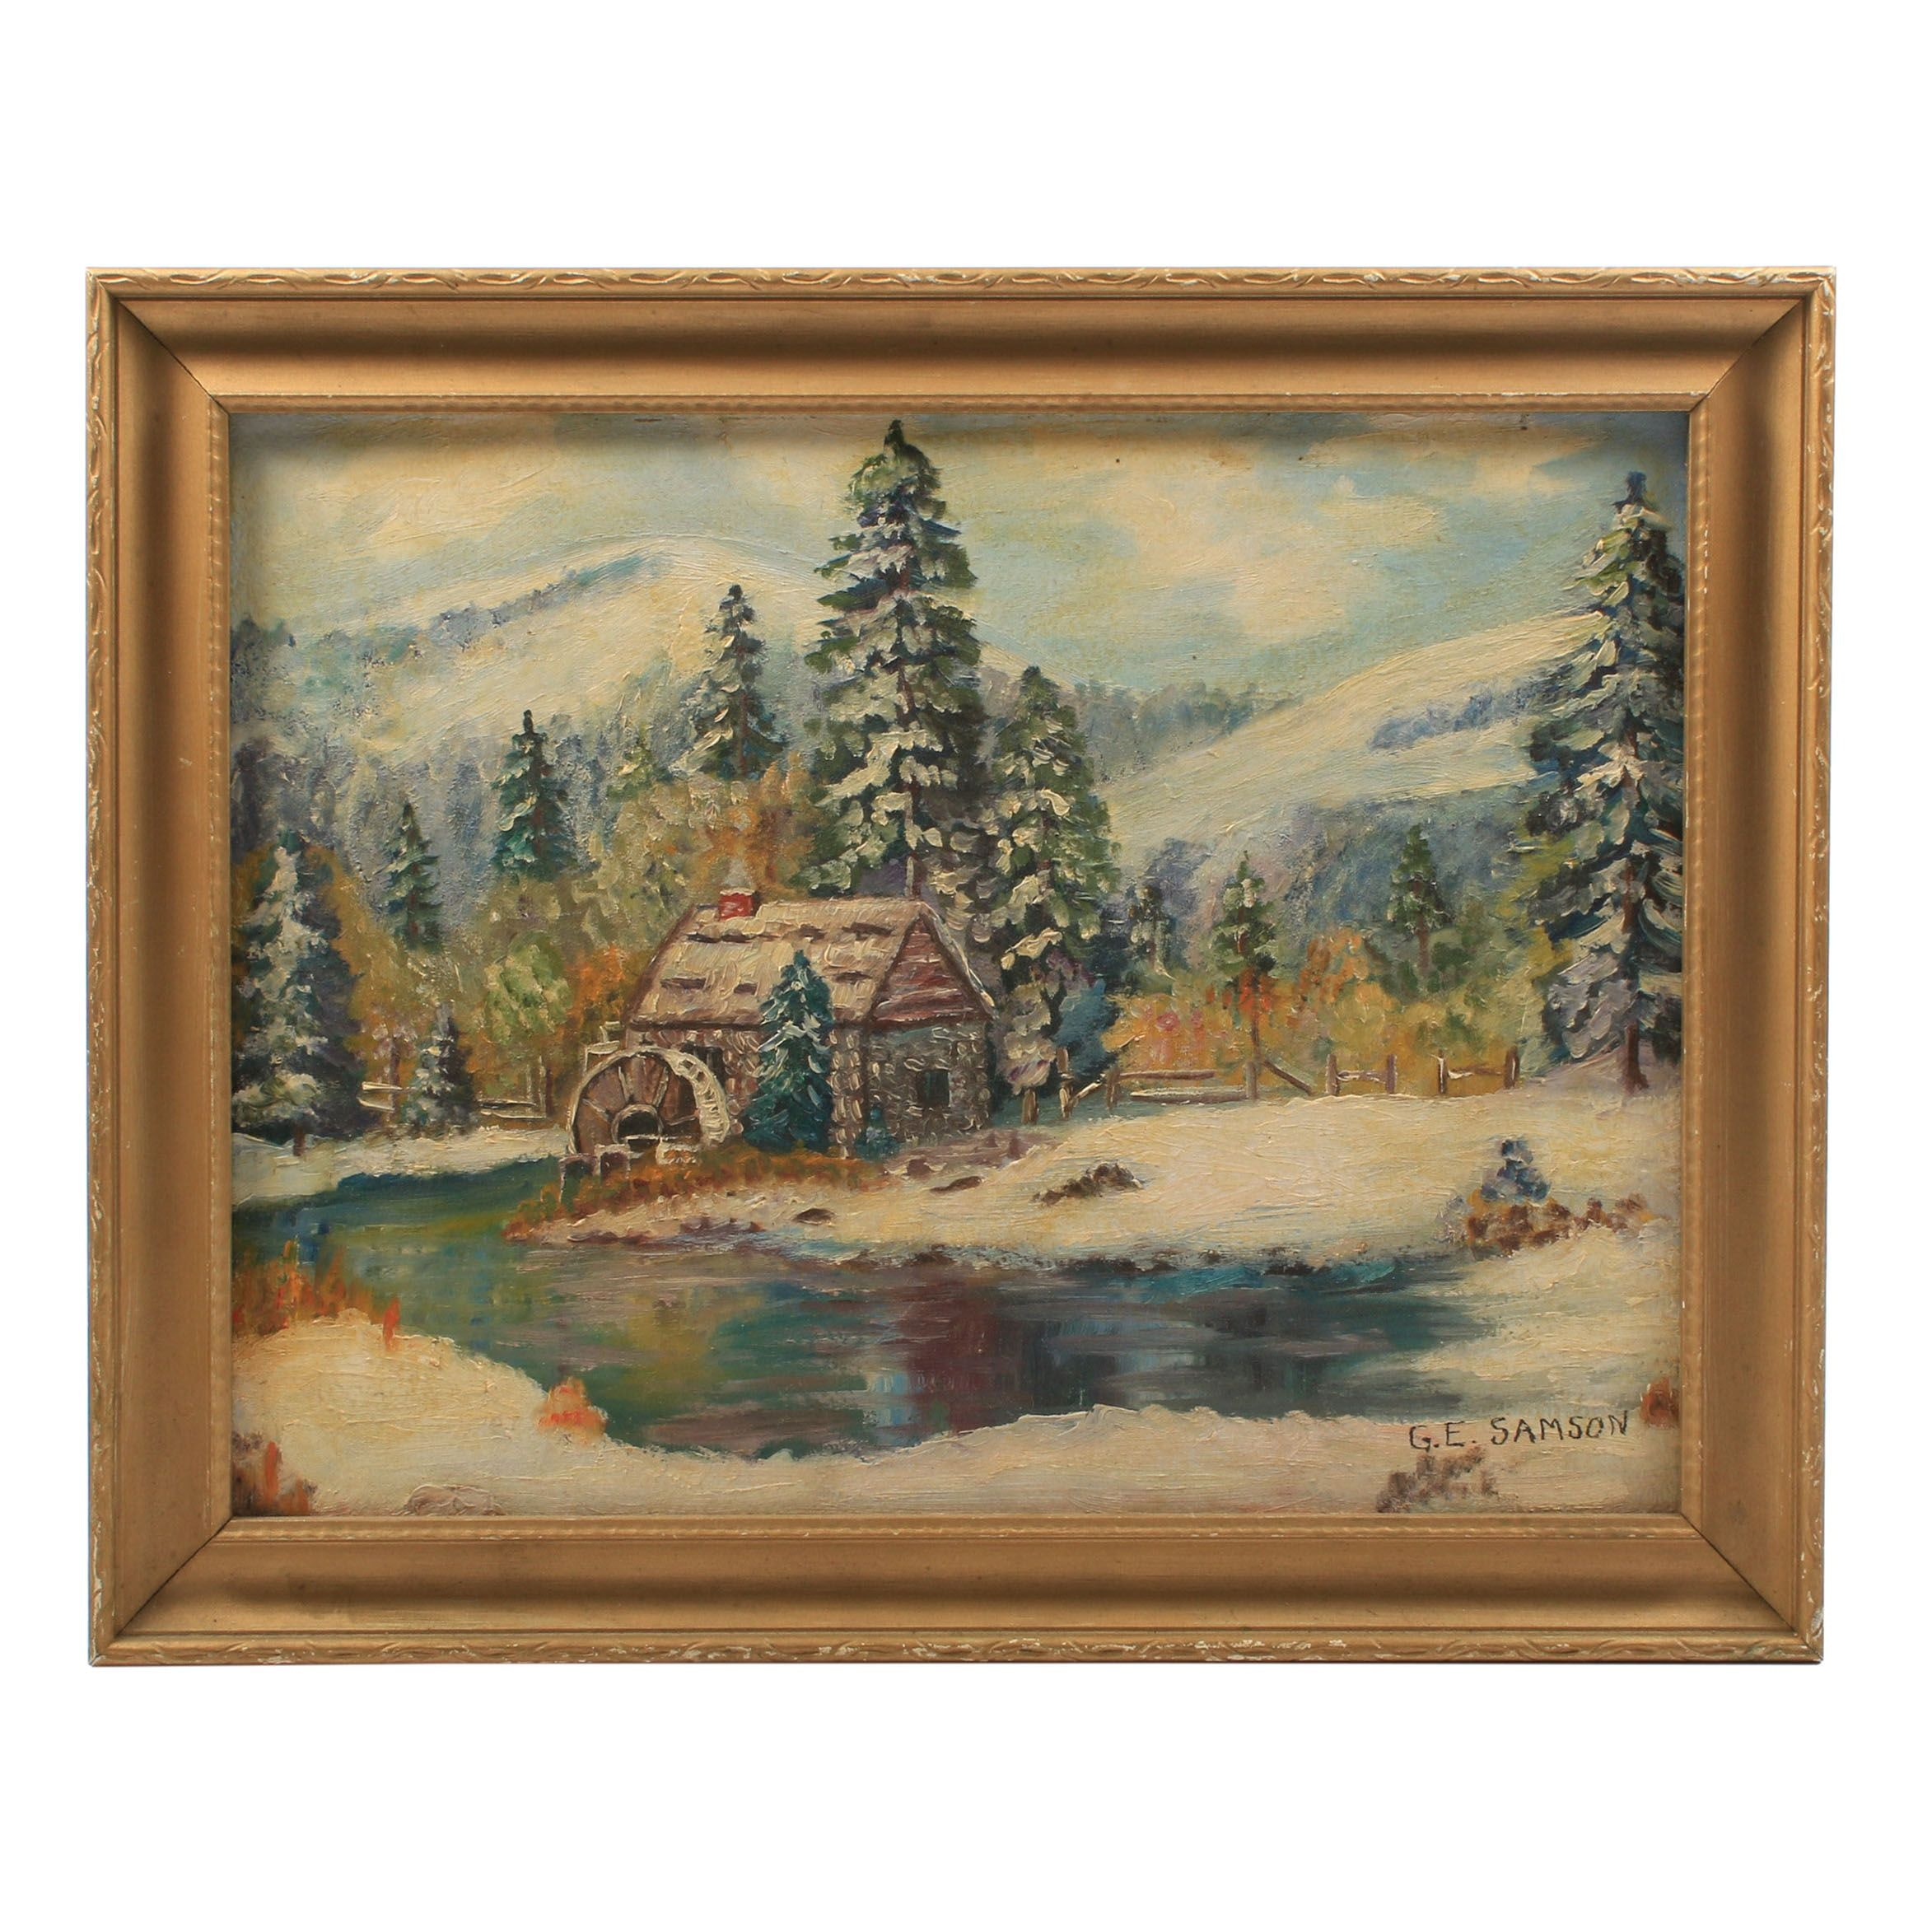 G. E. Samson 1955 Oil Painting of a Winter Landscape